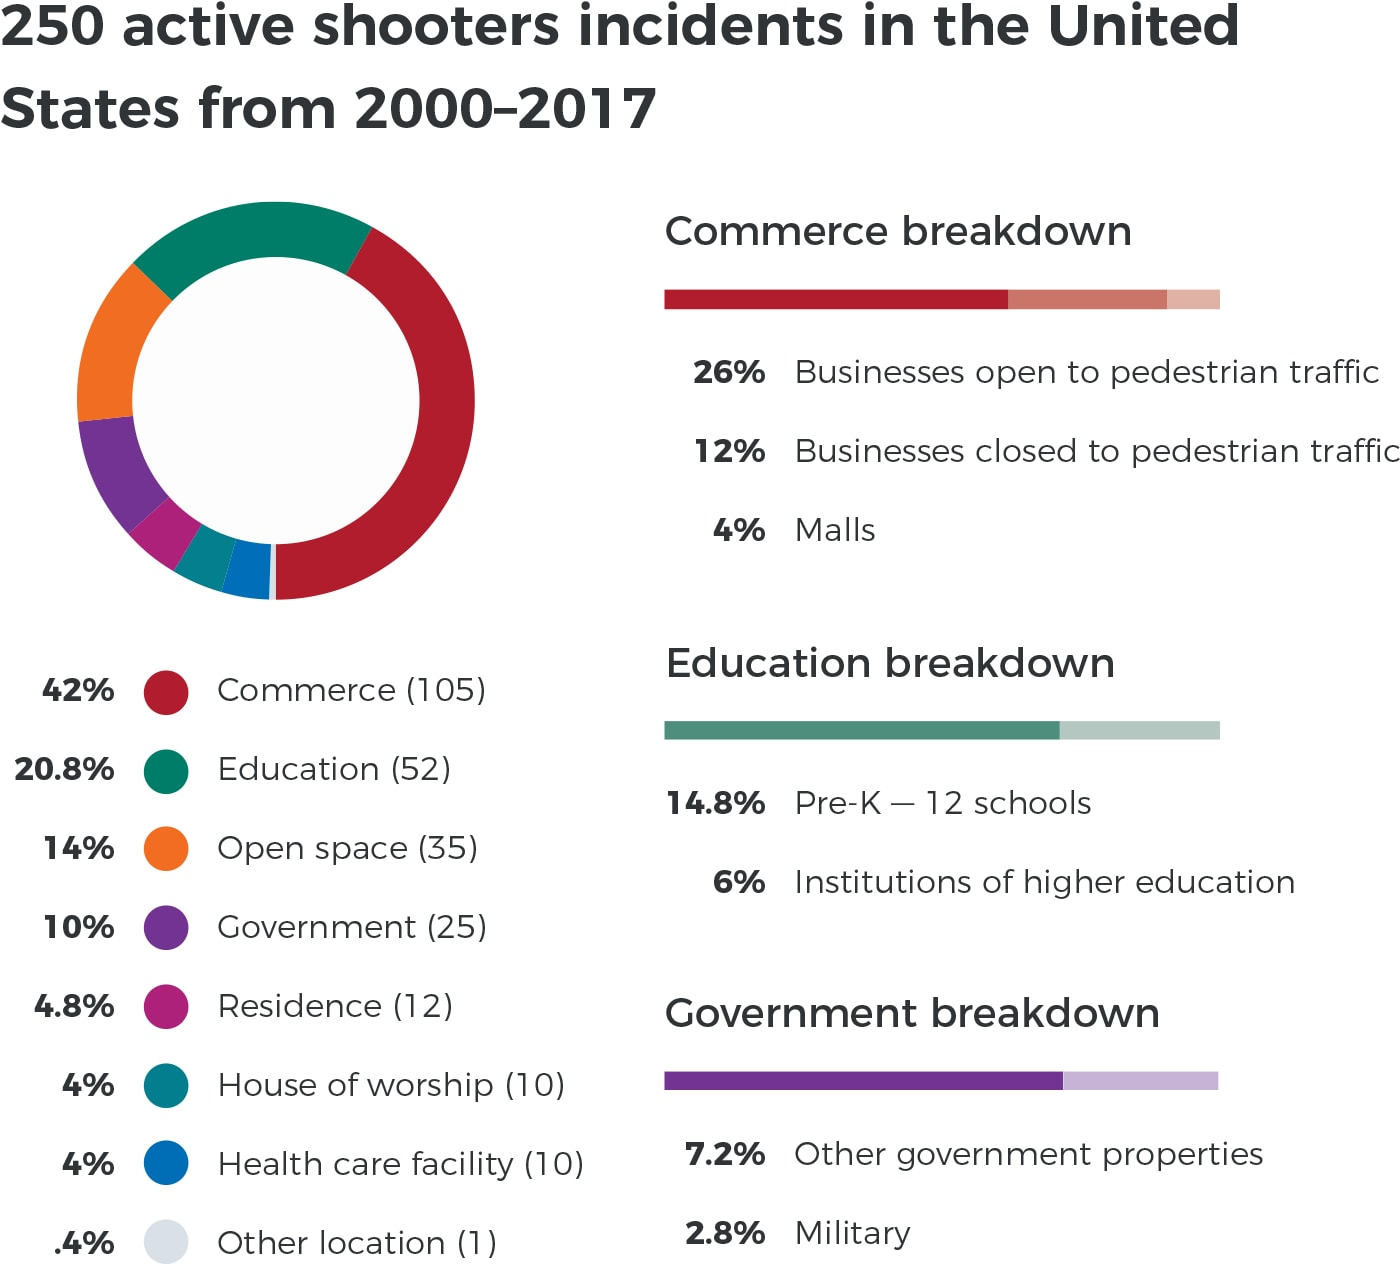 250 active shooters incidents in the United States from 2000-2017